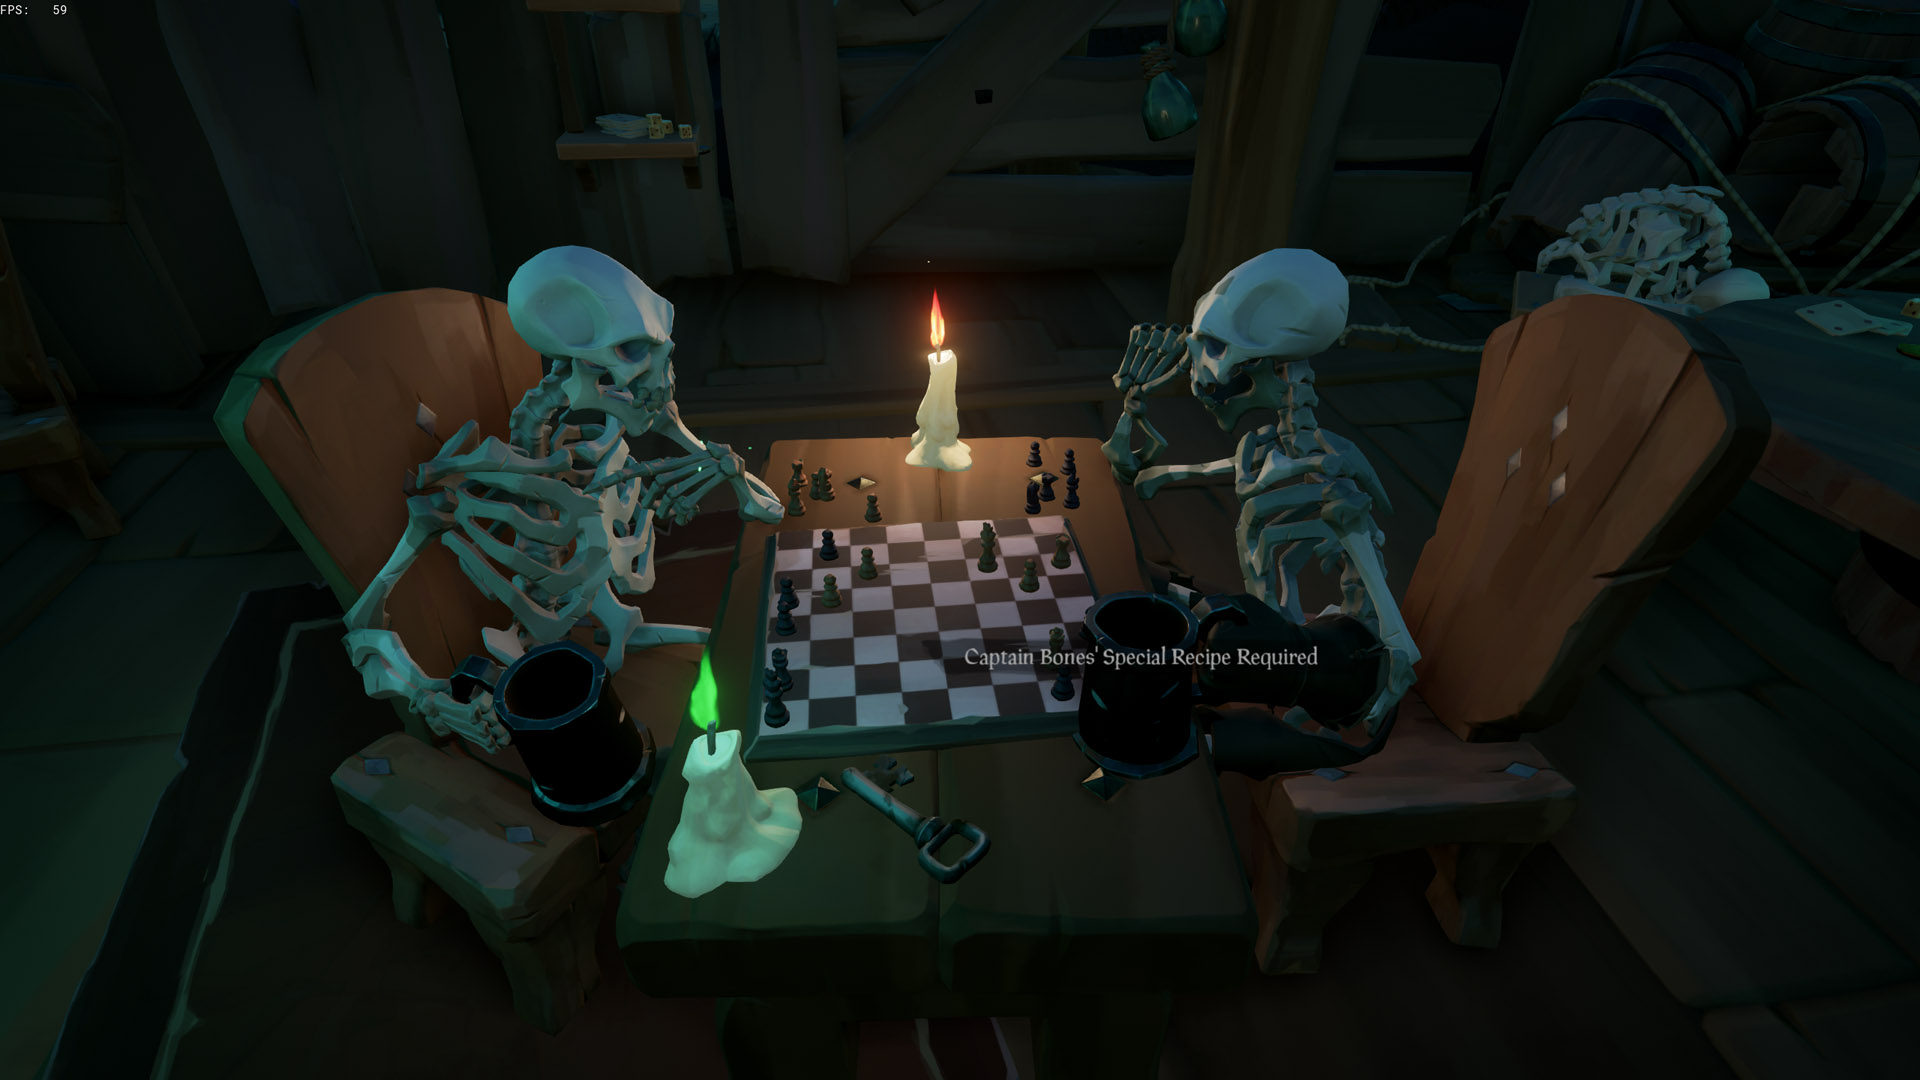 sea of thieves a pirates life captain bones special recipe required